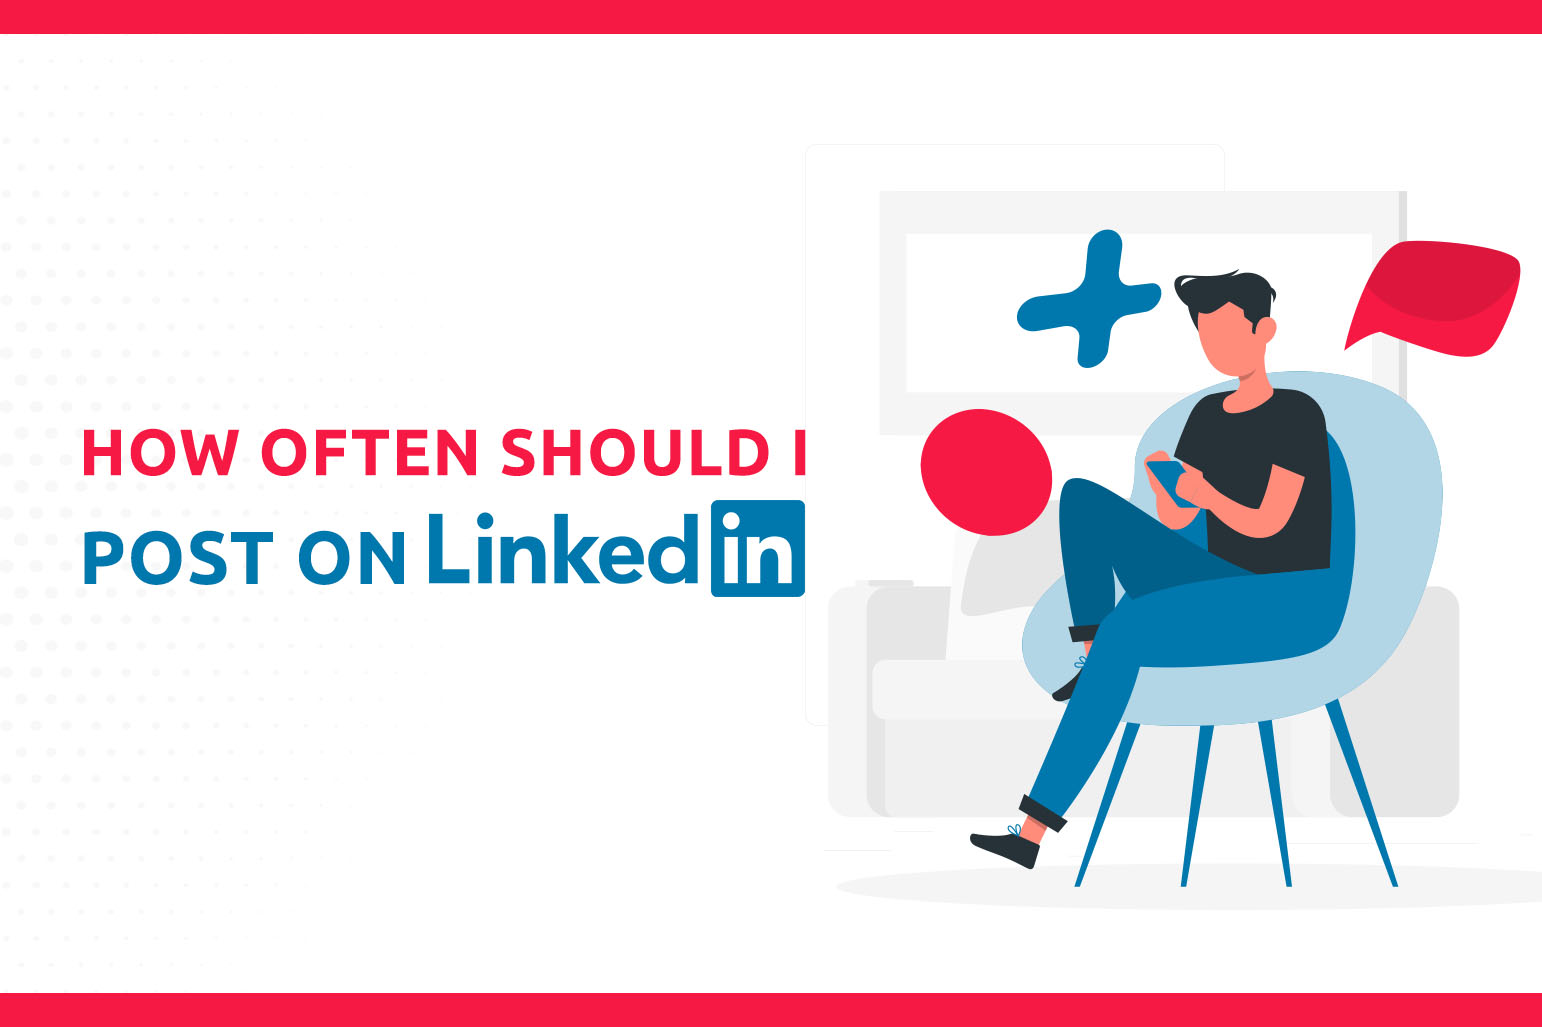 How Often Should I Post On LinkedIn?